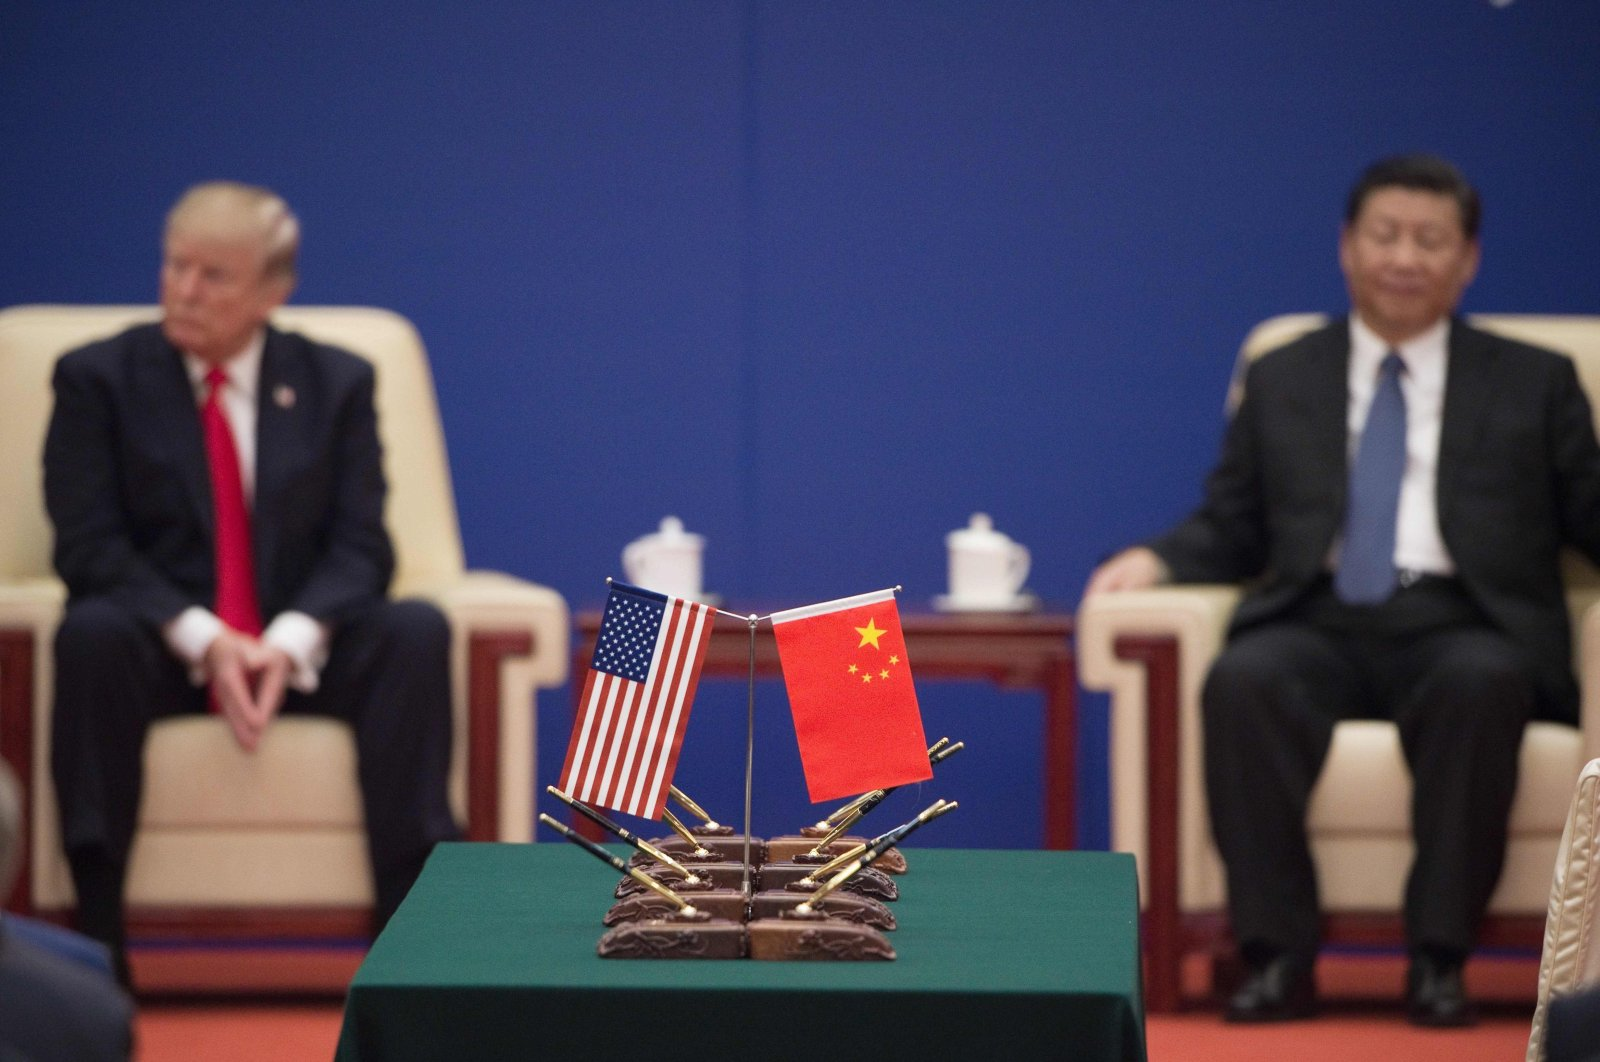 U.S. President Donald Trump and China's President Xi Jinping attend a business leaders' event inside the Great Hall of the People, Beijing, Nov. 9, 2017. (AFP Photo)